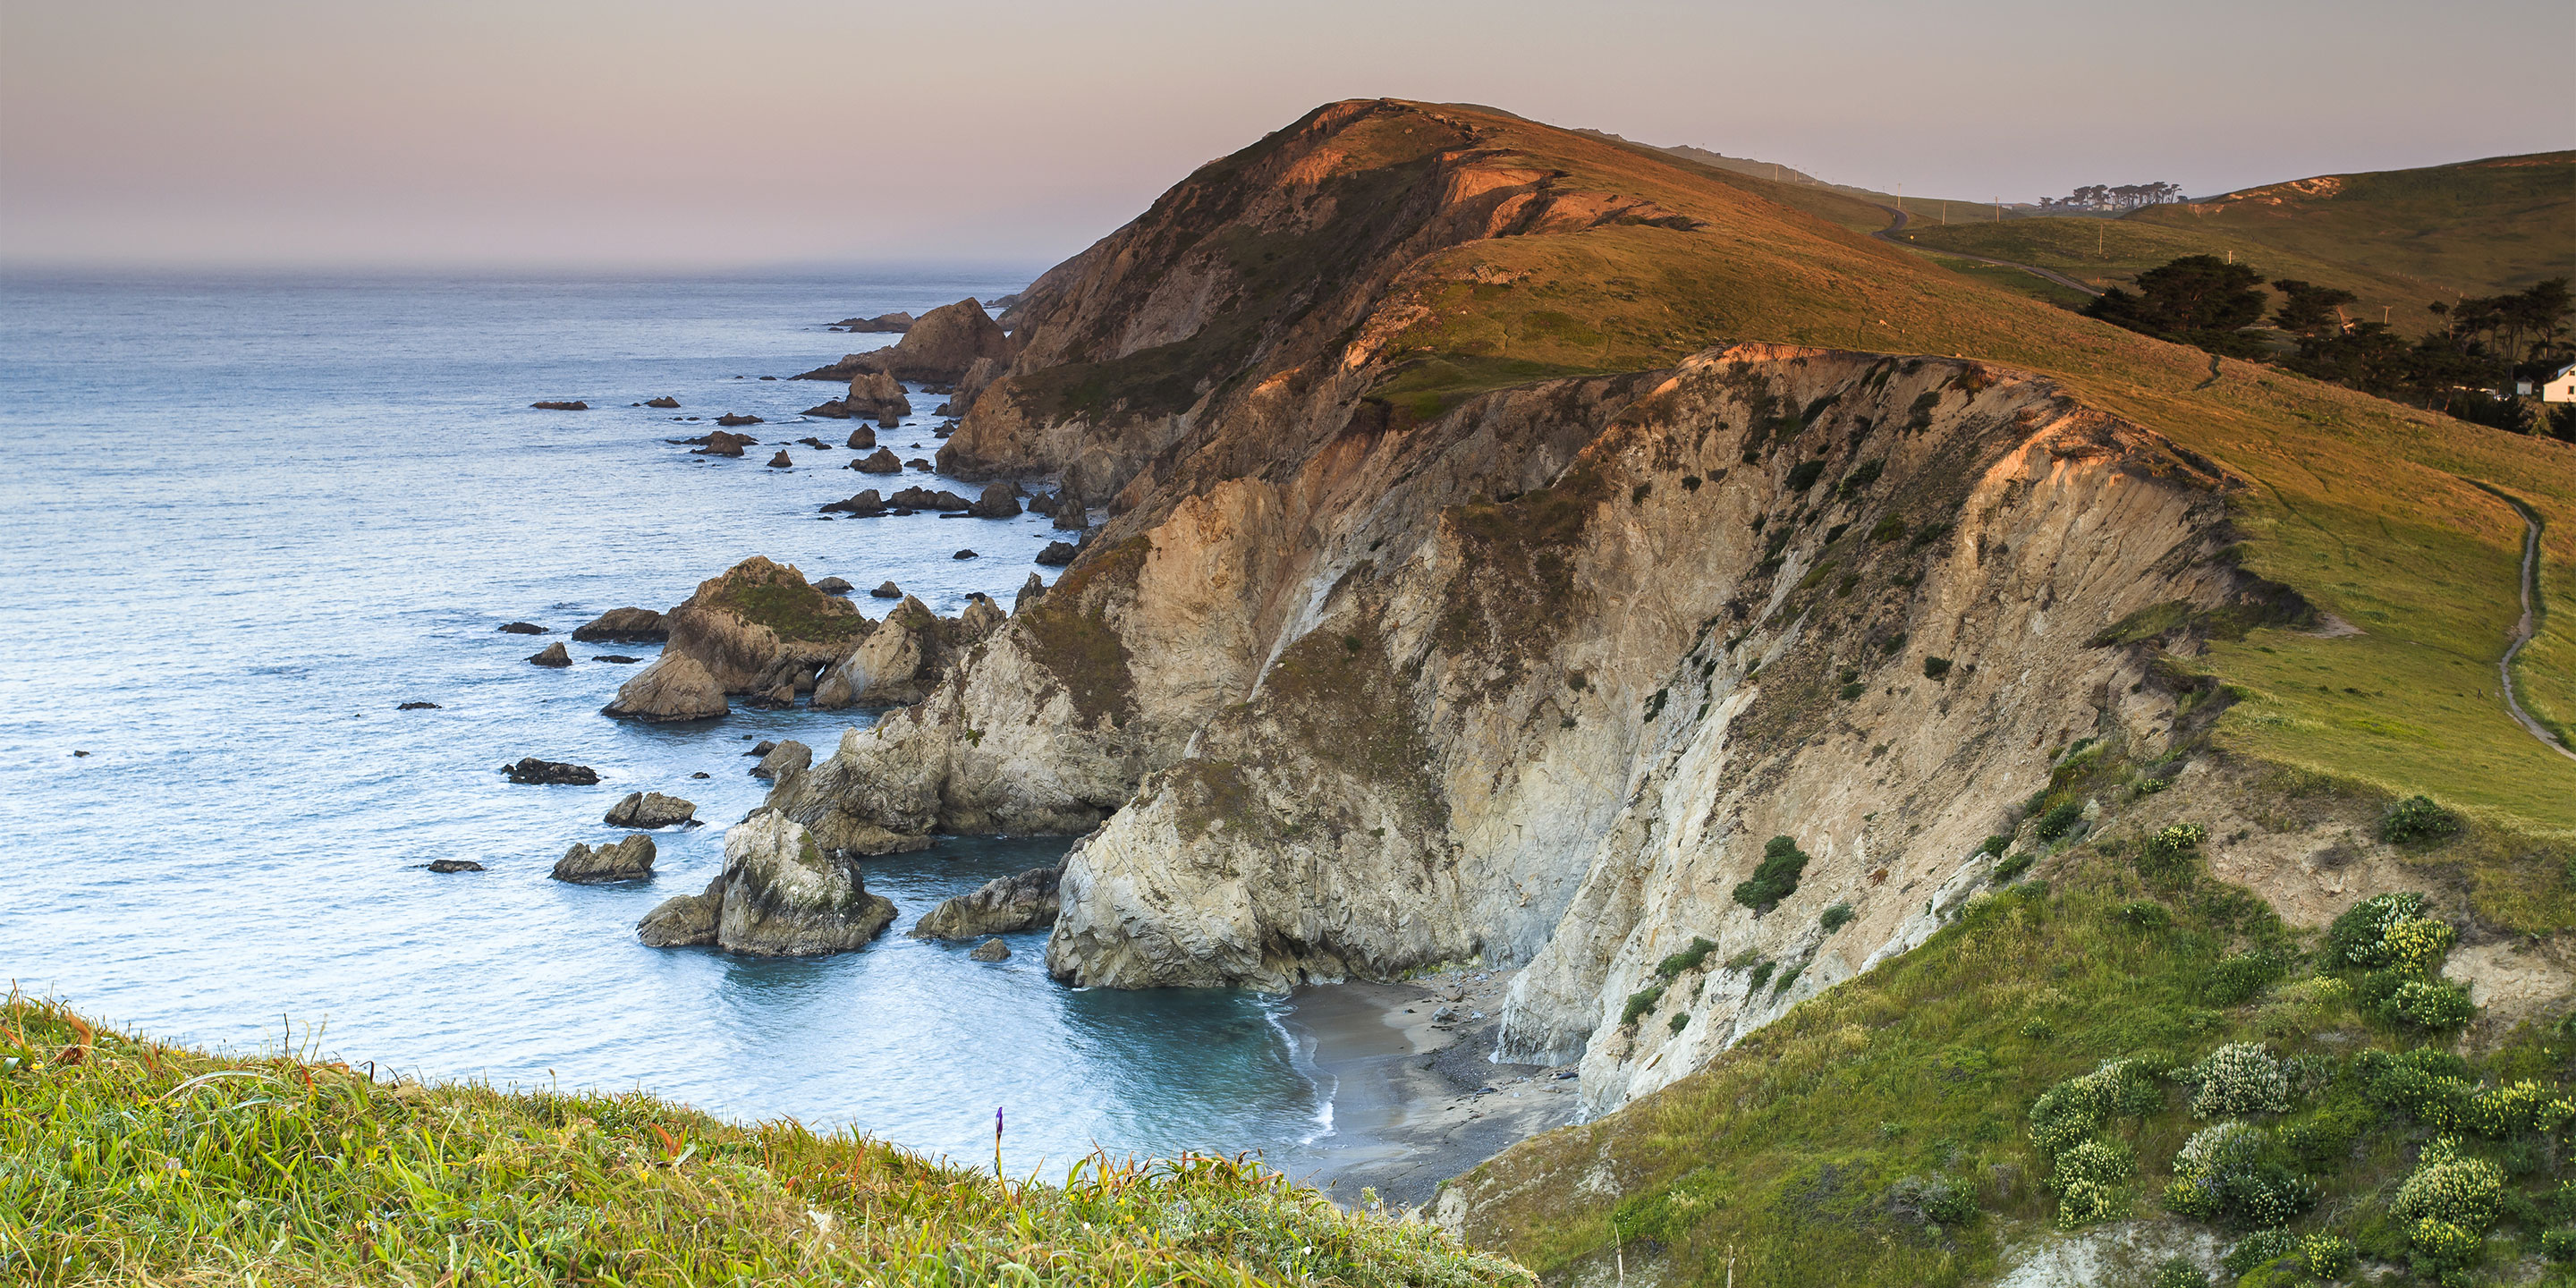 Marin County Day Road Trip | Via